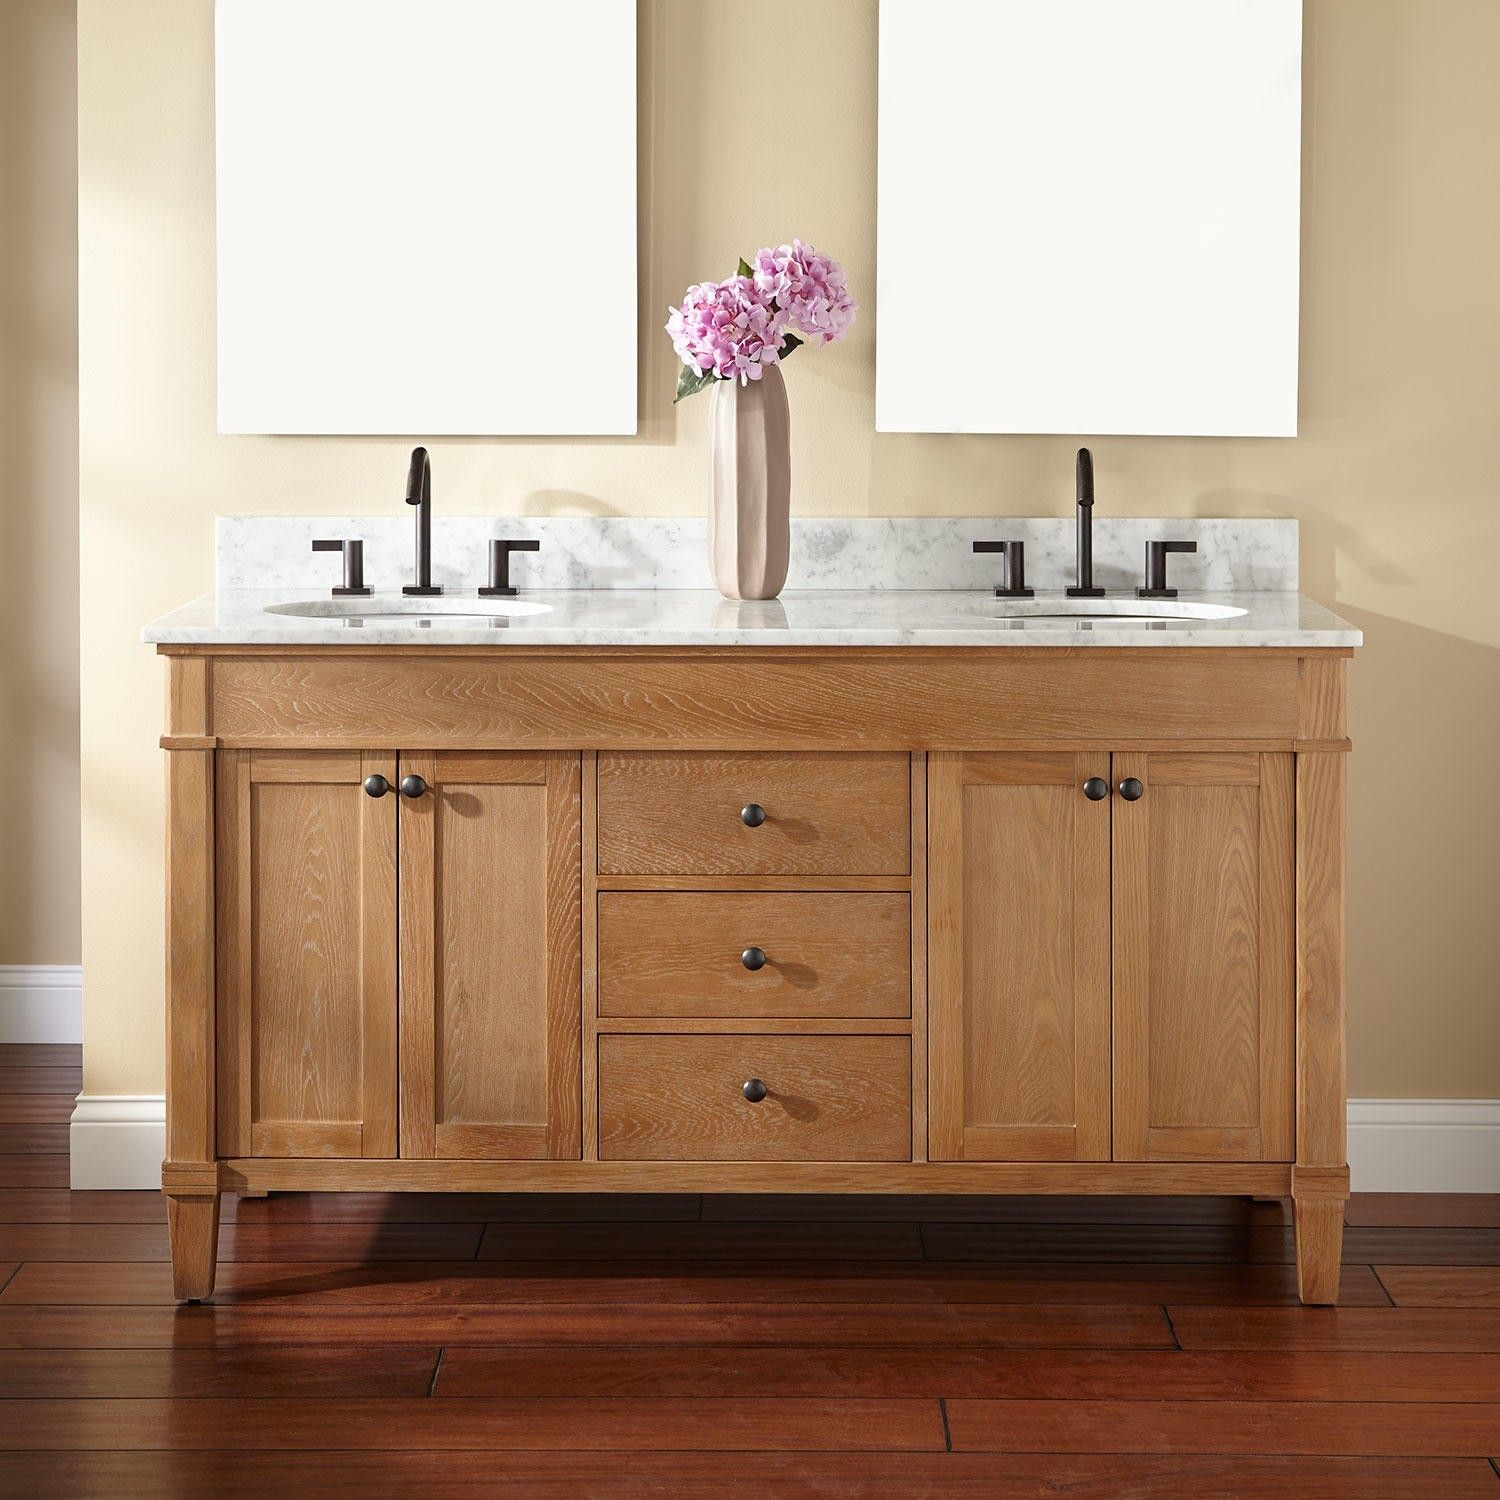 Natural Unfinished Oak Wood Vanity Cabinet Mixed Black Polished Metal Faucet Mesmerizing Double For Bathroom Decoration Ideas Furniture